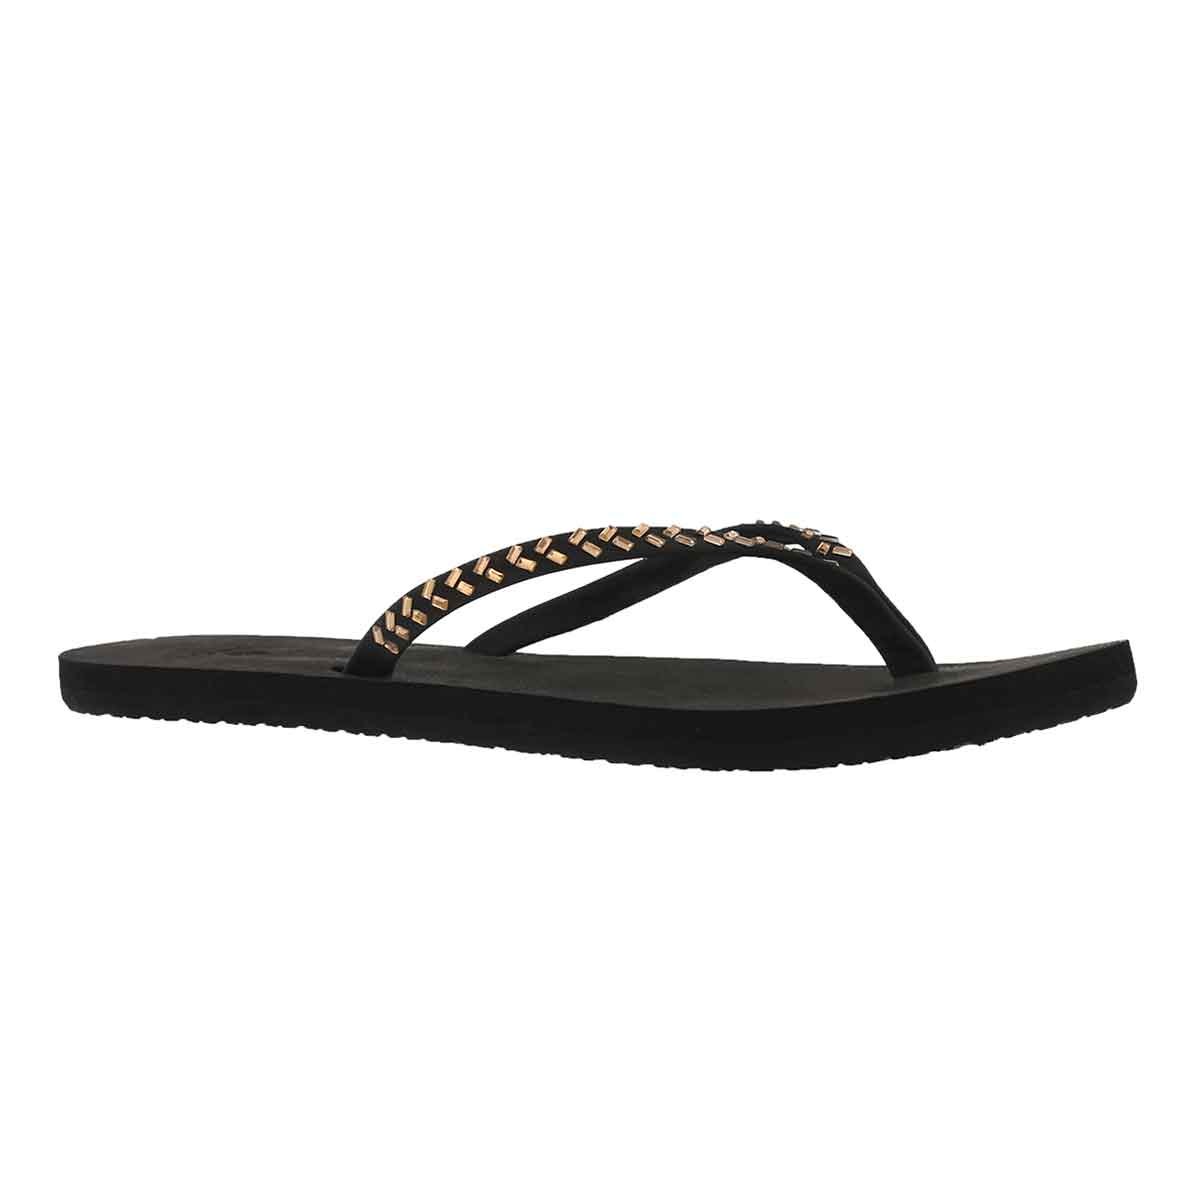 Women's BLISS EMBELLISH black/bronze flip flop